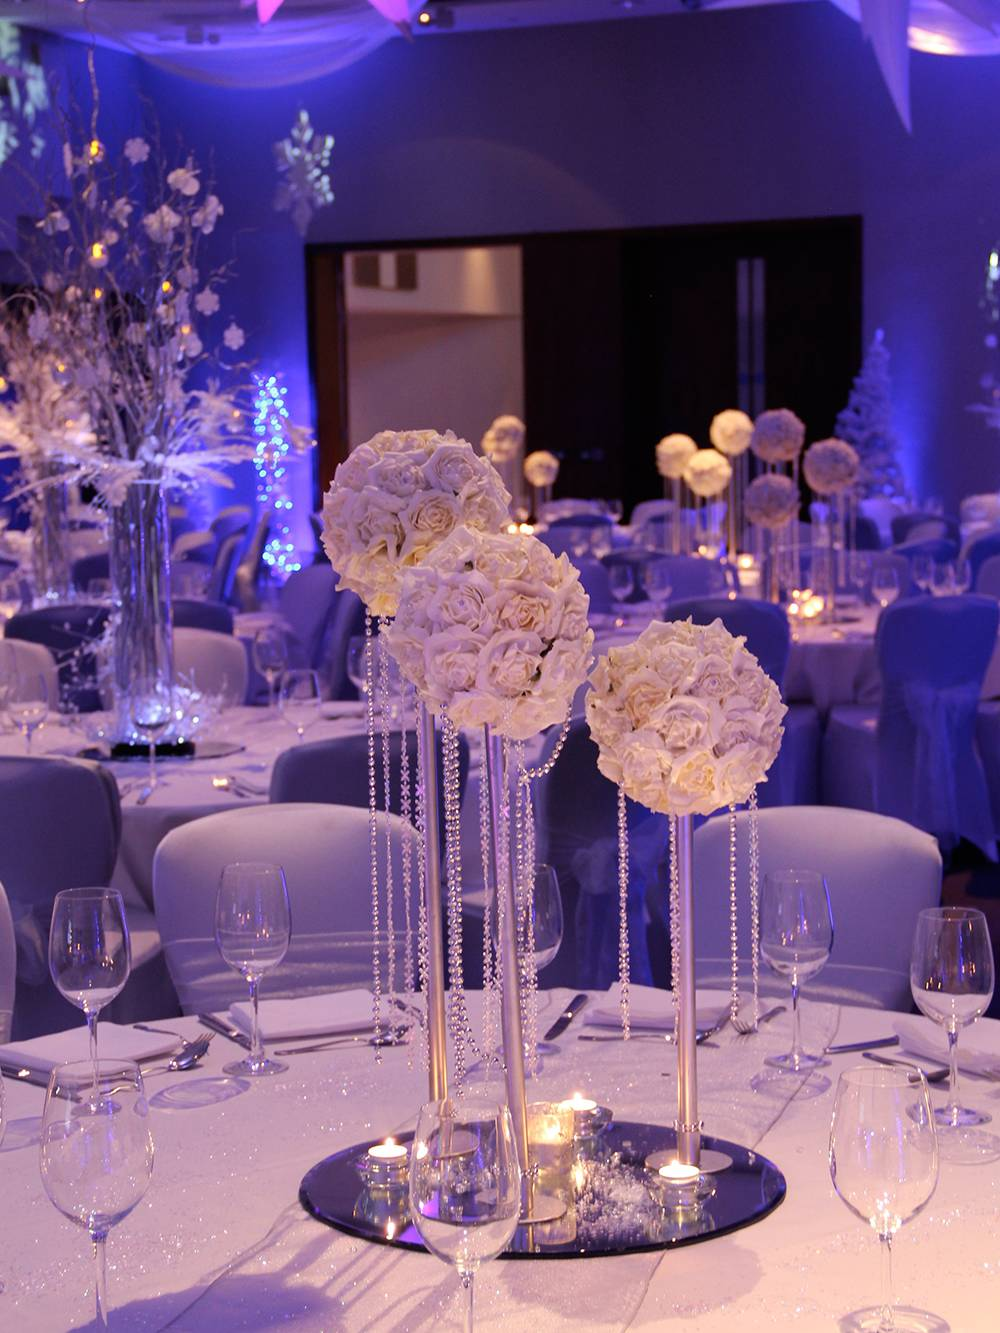 Winter wonderland theme venue dressing at Hilton Hotel Liverpool